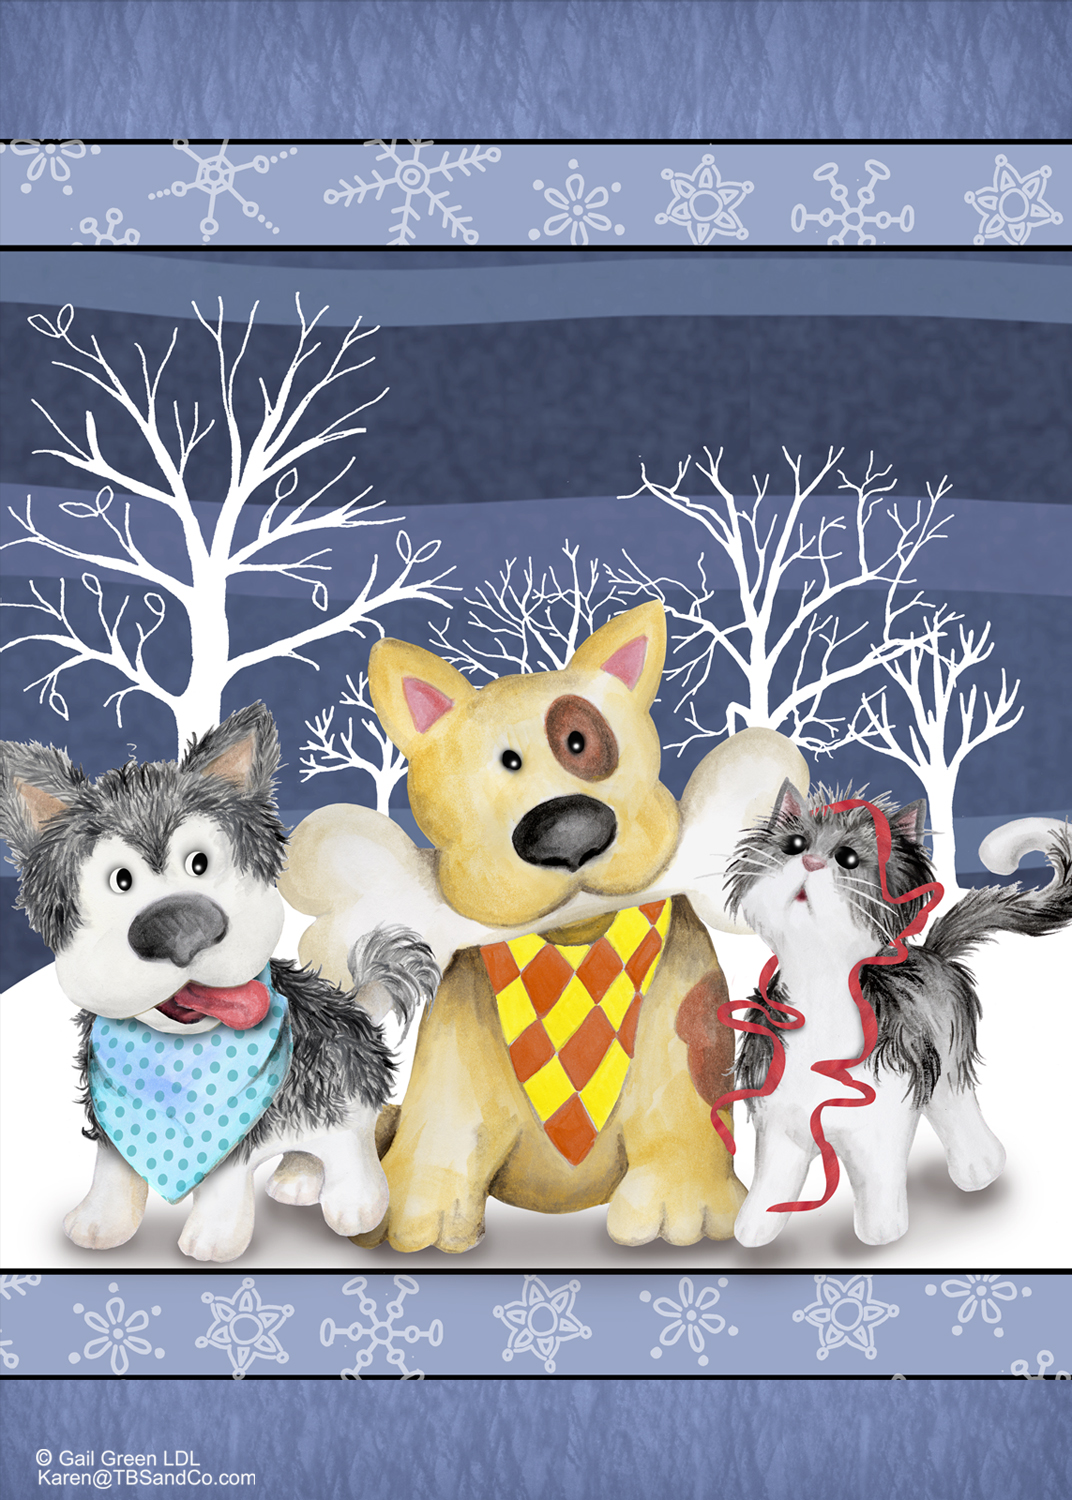 GG_WinterStationery_135-SP.jpg